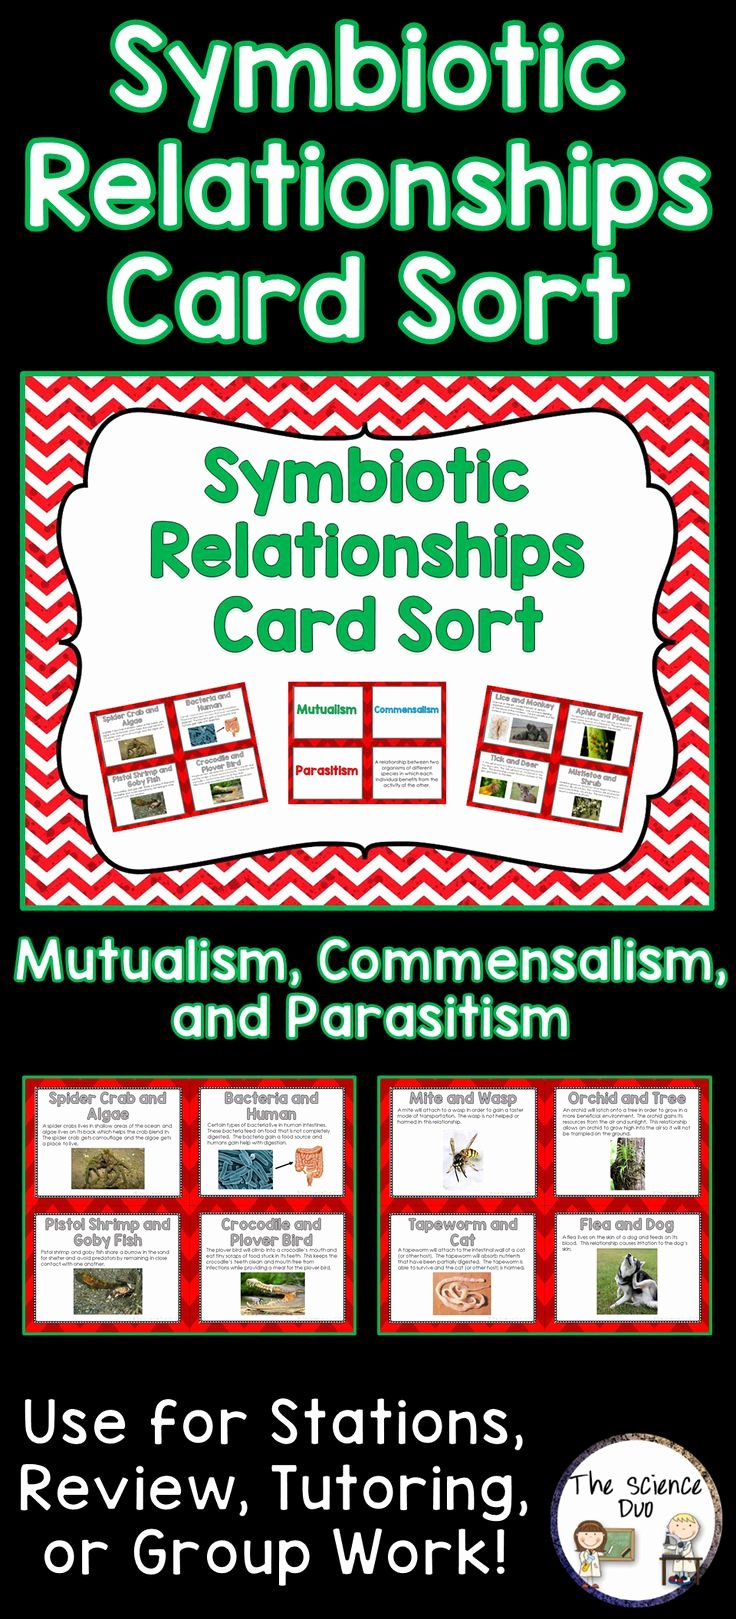 Symbiotic Relationships Worksheet Answers Best Of Symbiotic Relationships Card sort